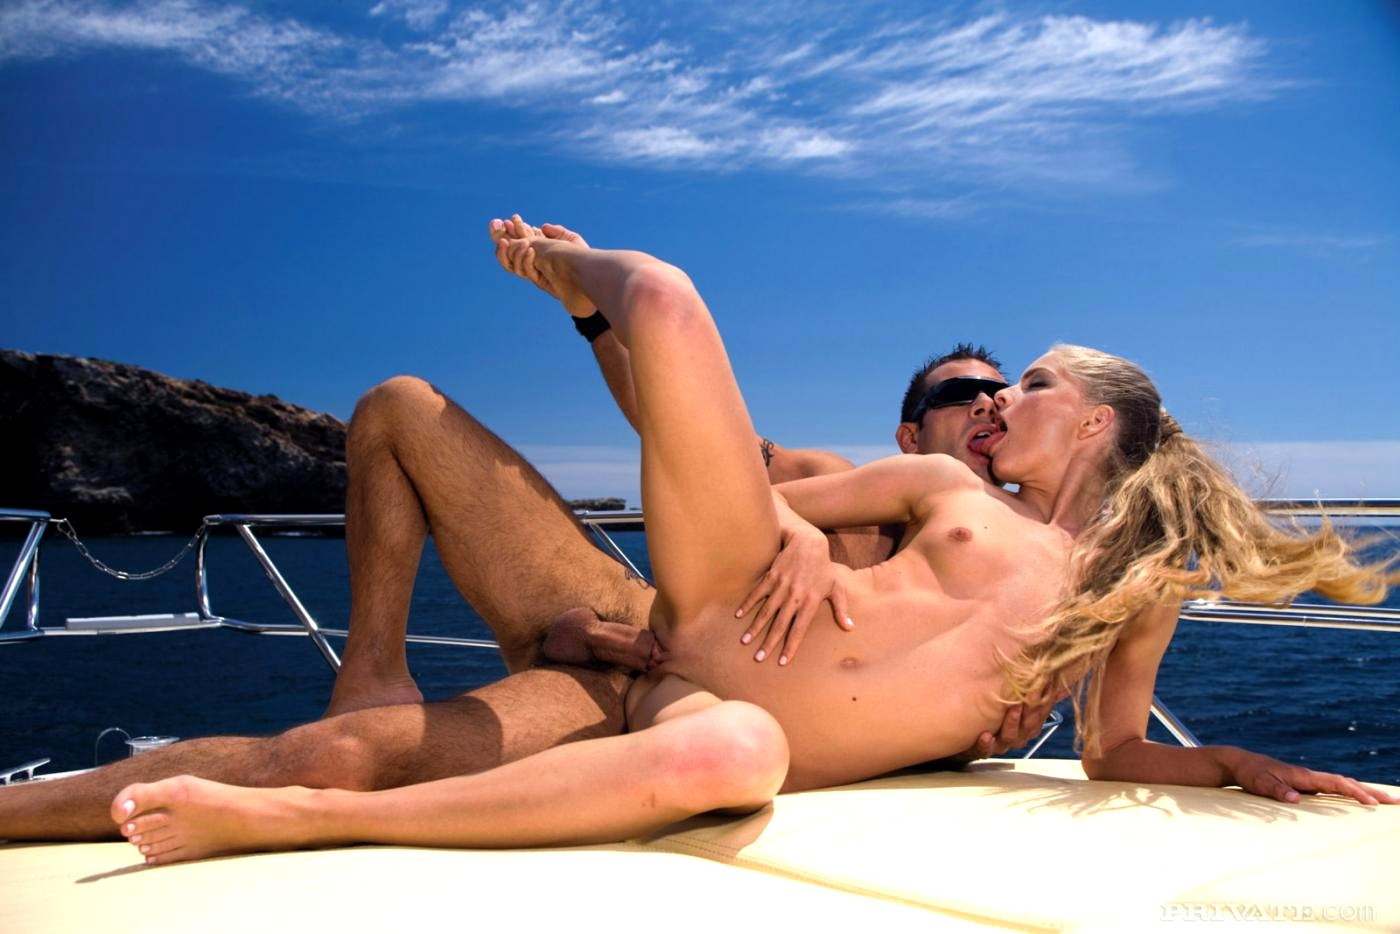 yacht-sex-video-he-had-the-of-the-amateur-before-the-professional